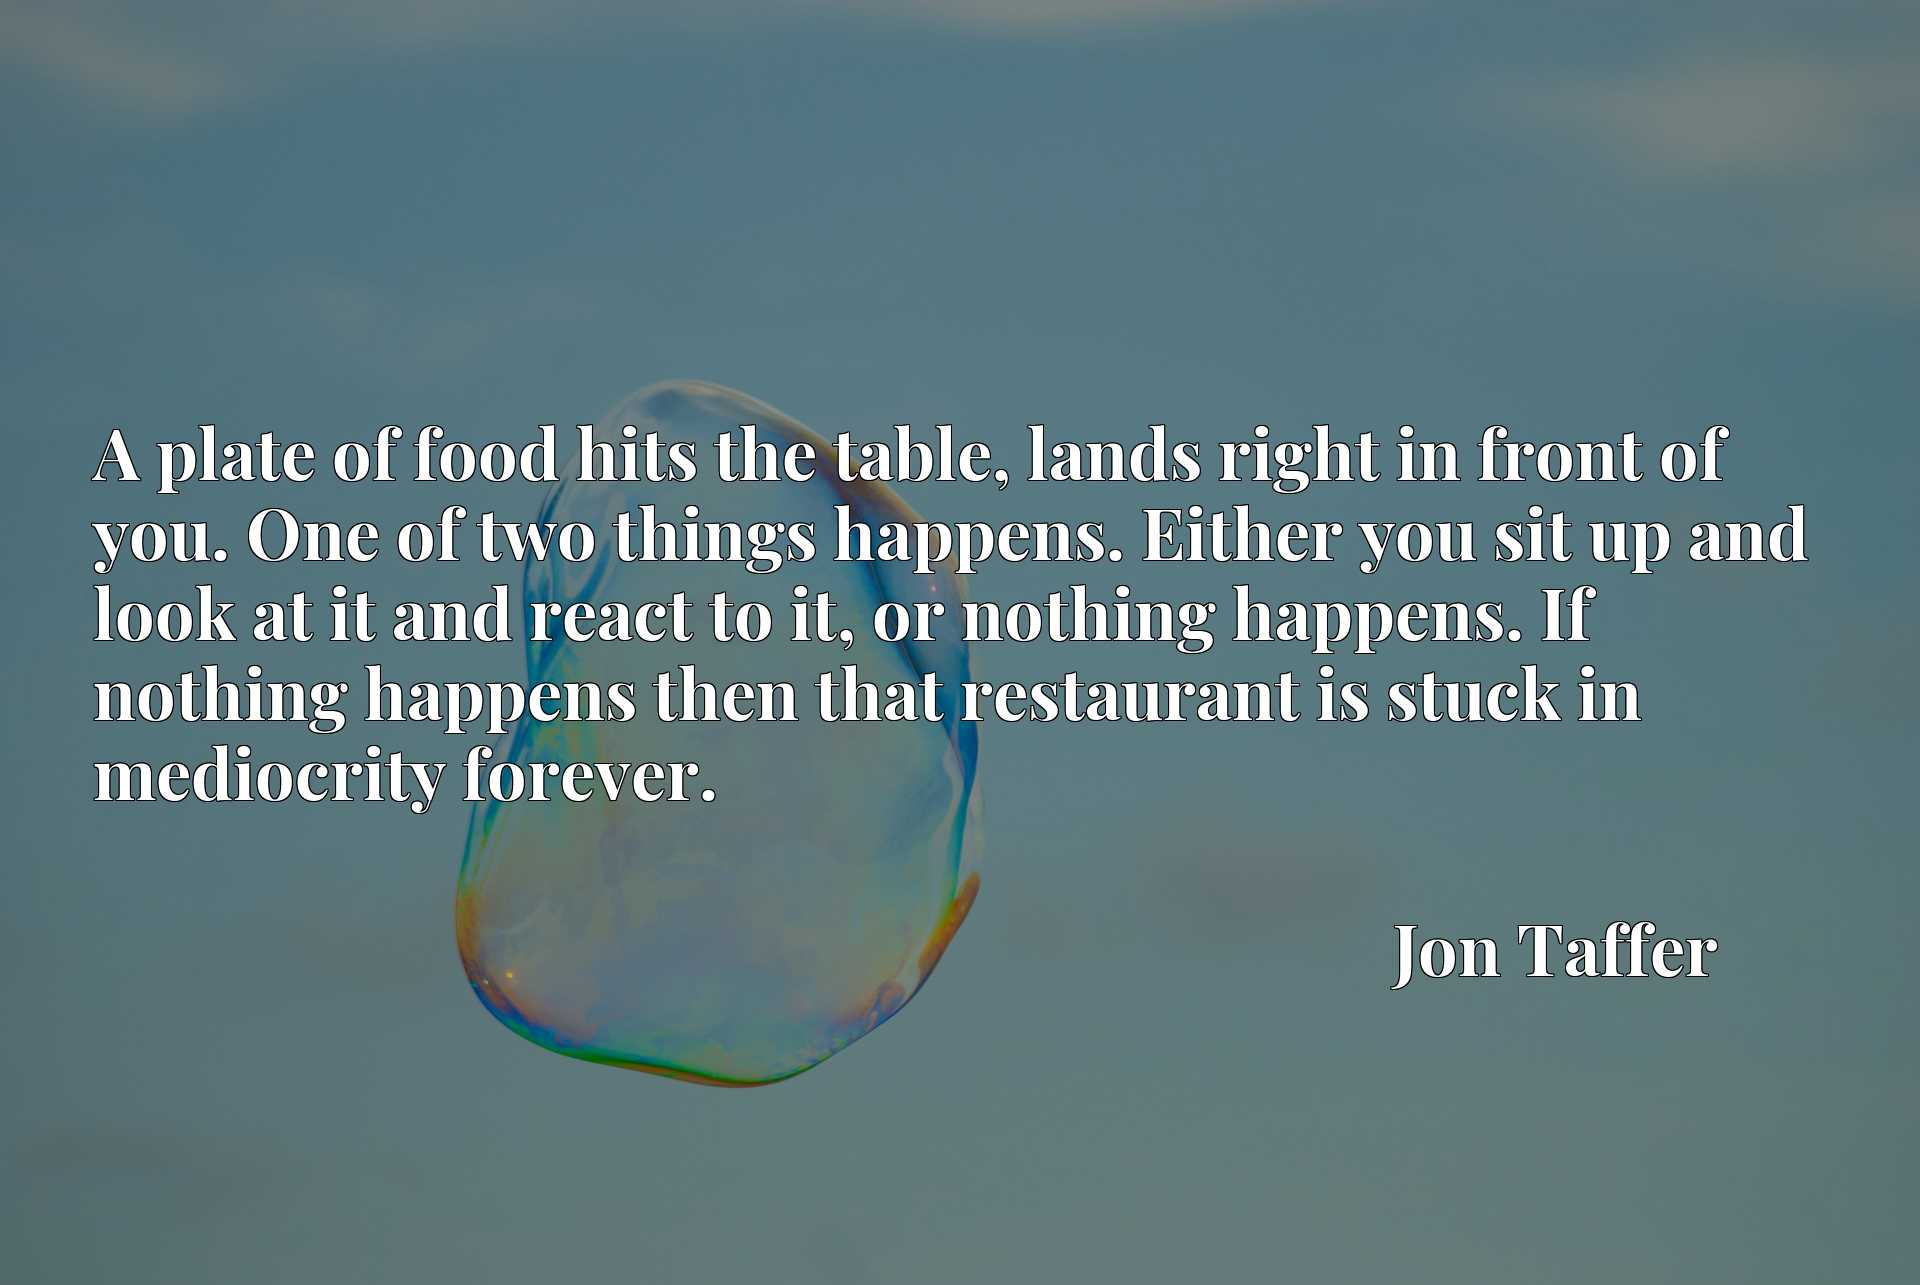 A plate of food hits the table, lands right in front of you. One of two things happens. Either you sit up and look at it and react to it, or nothing happens. If nothing happens then that restaurant is stuck in mediocrity forever.